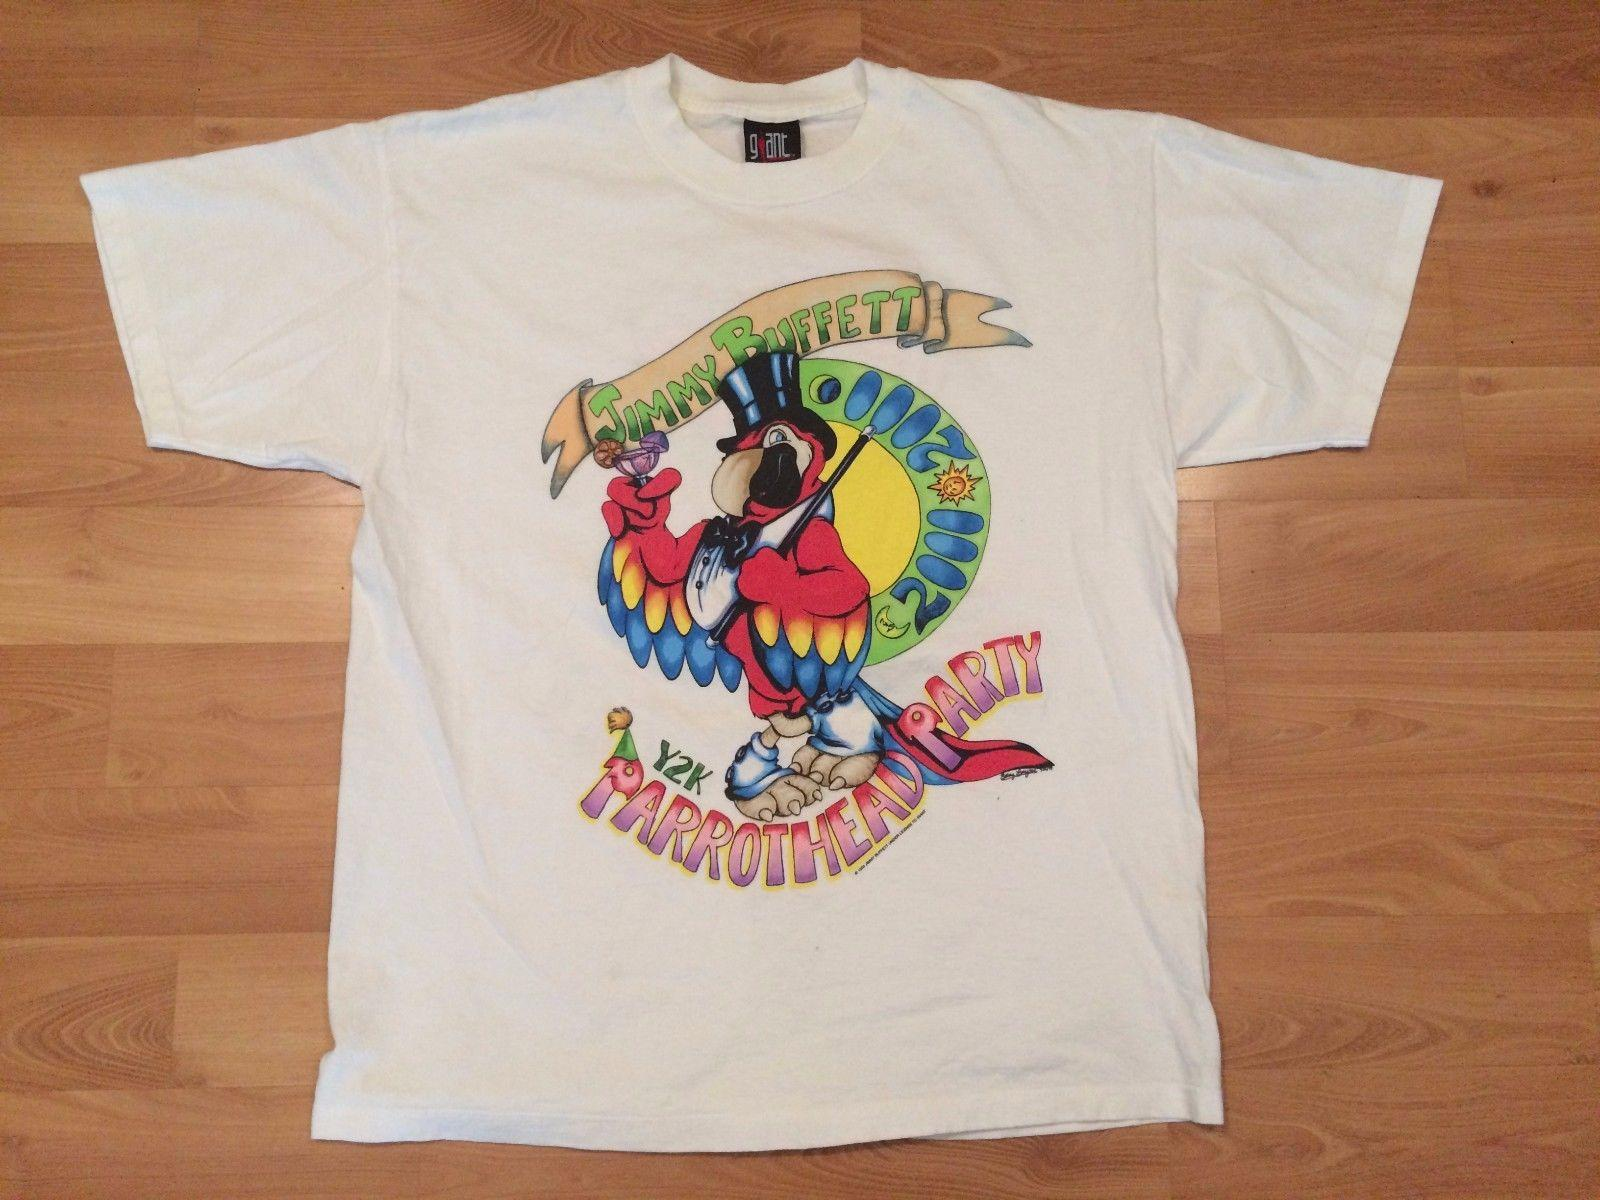 1999 Jimmy Buffett Y2k Parrothead Party T Shirt Mens Xl New Years 2000 La  Cali